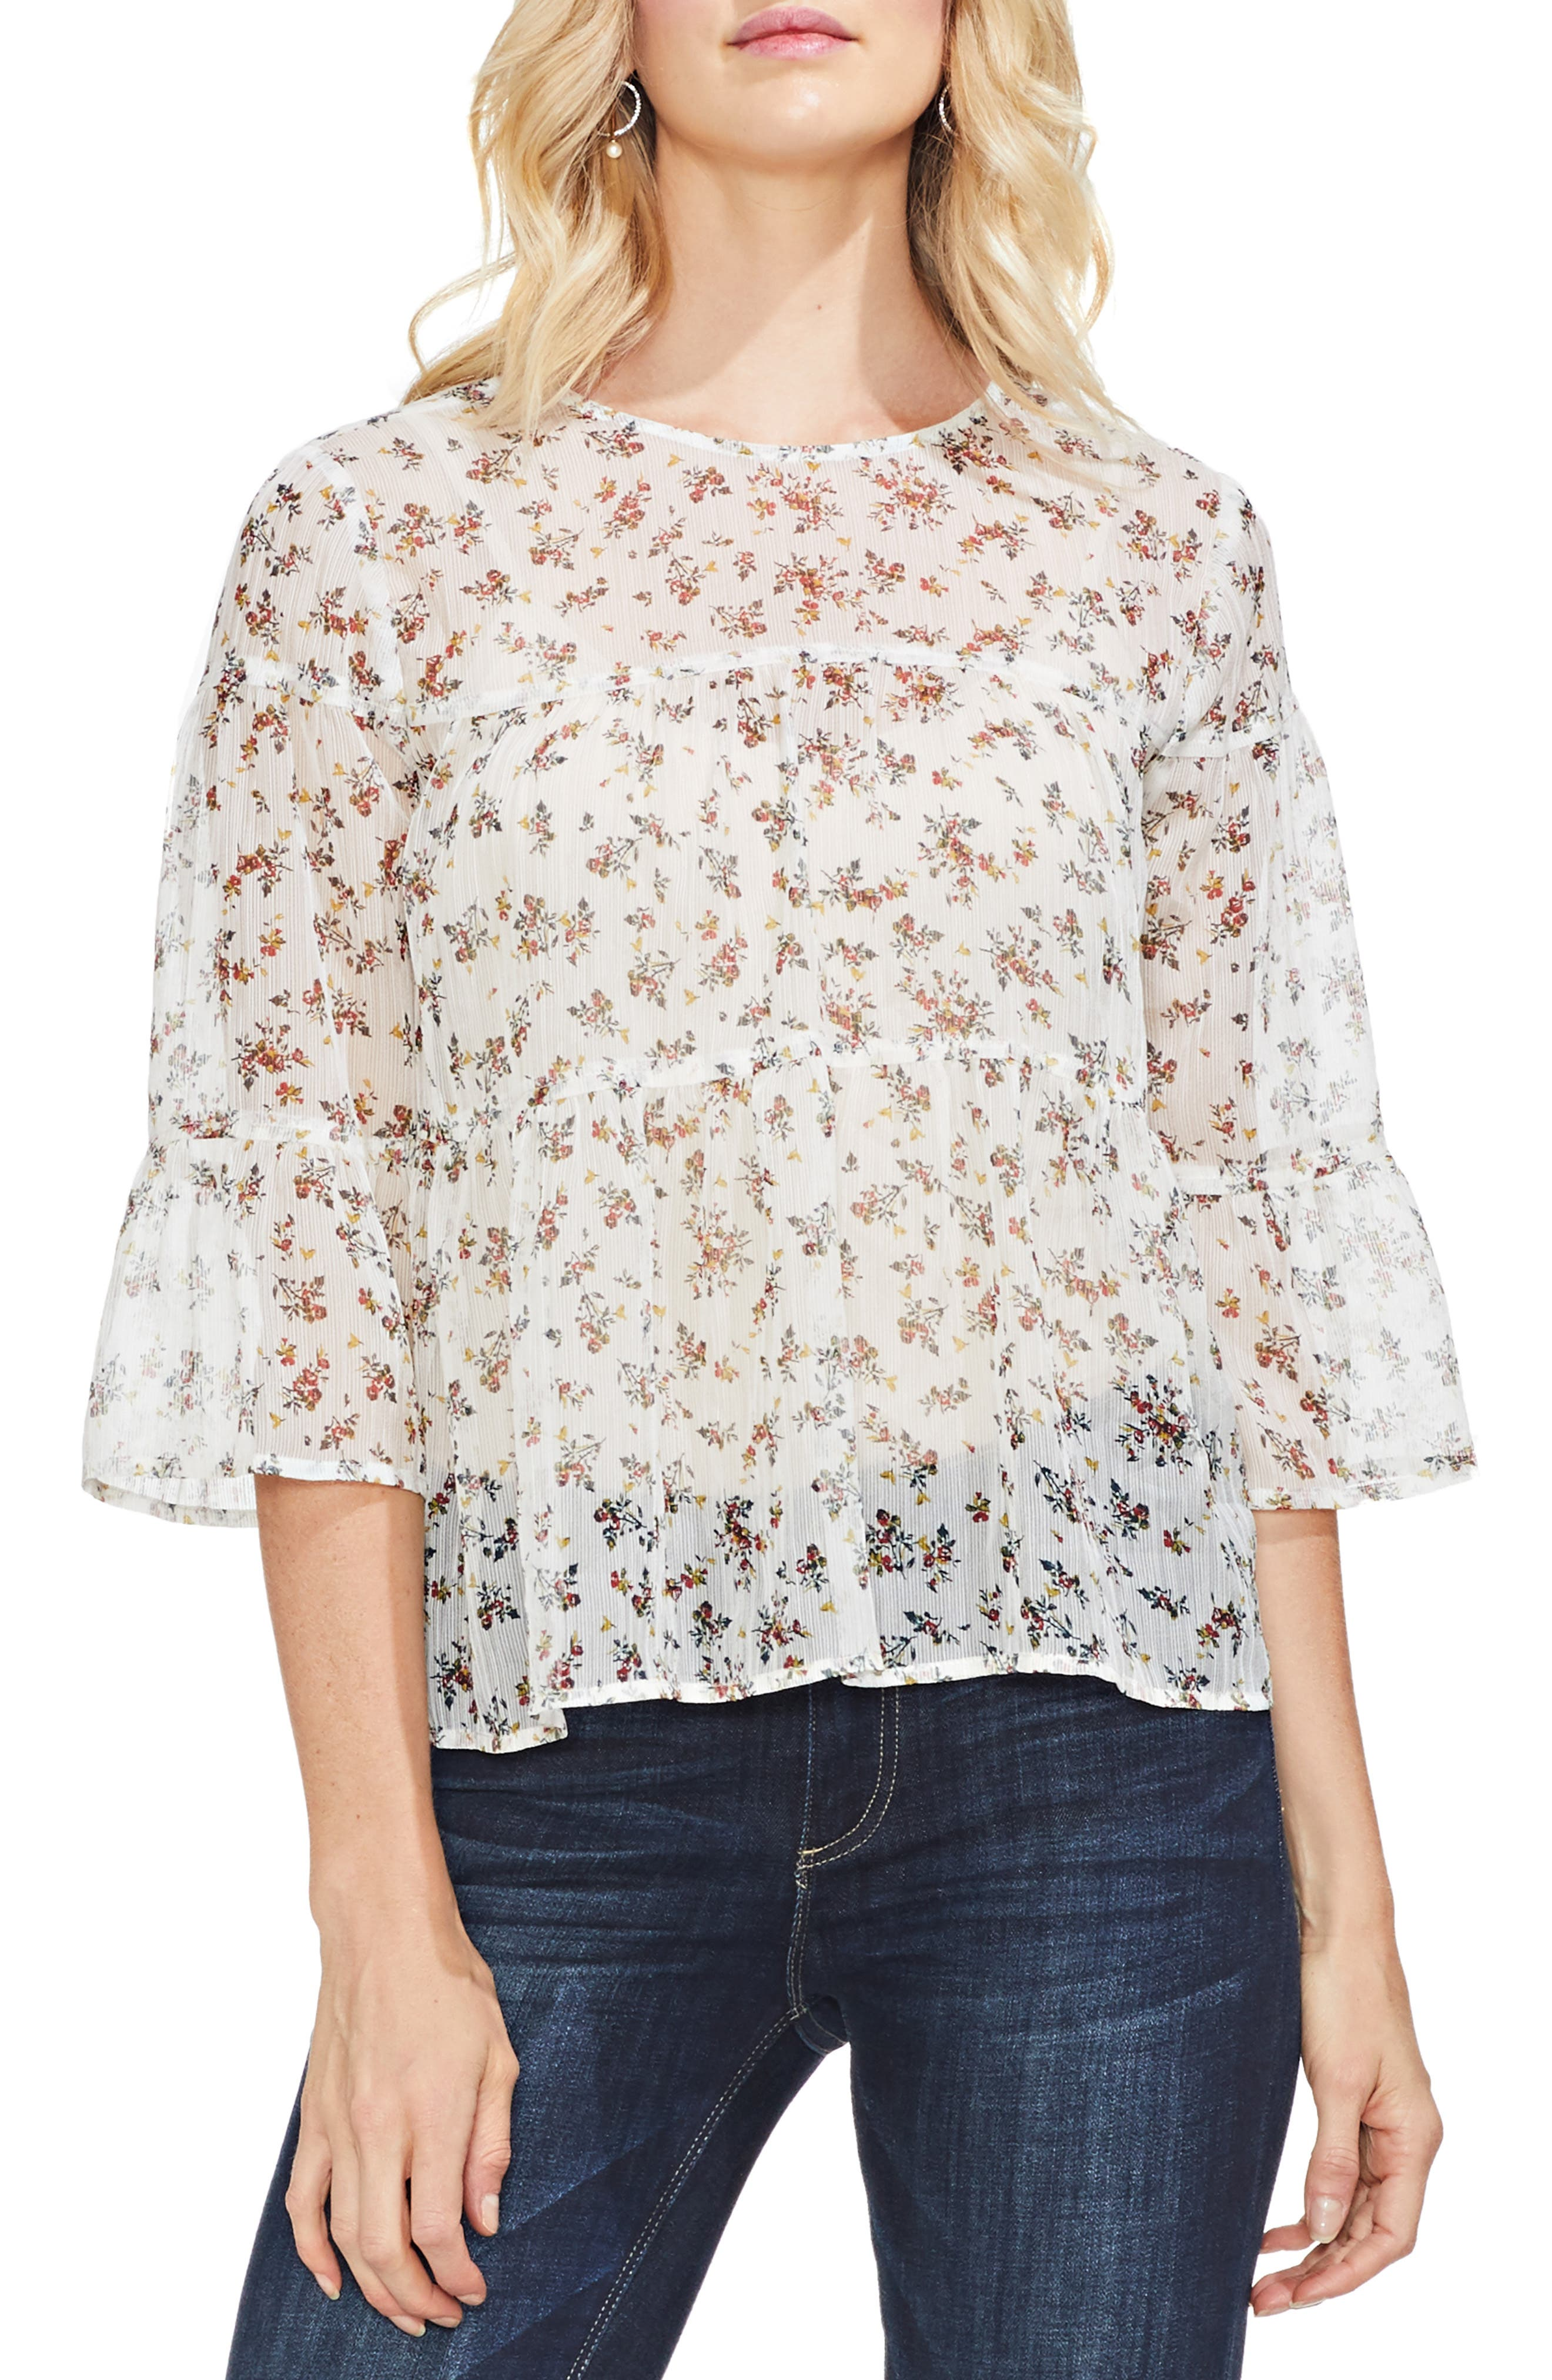 VINCE CAMUTO, Ditsy Manor Tiered Ruffle Blouse, Main thumbnail 1, color, 108